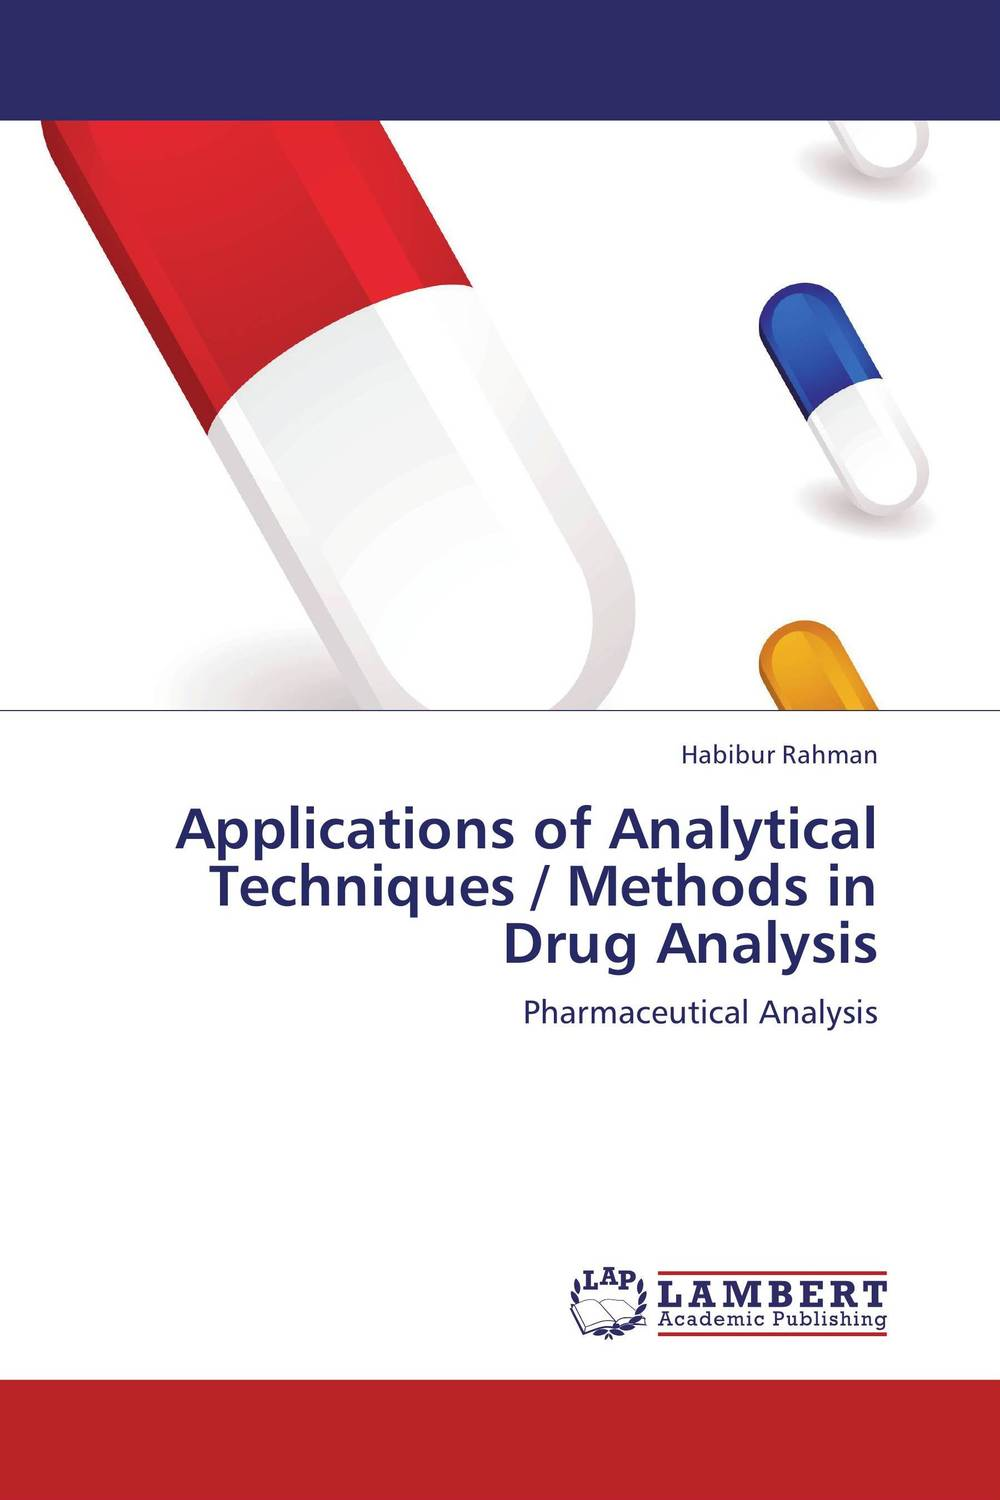 Applications of Analytical Techniques / Methods in Drug Analysis купить